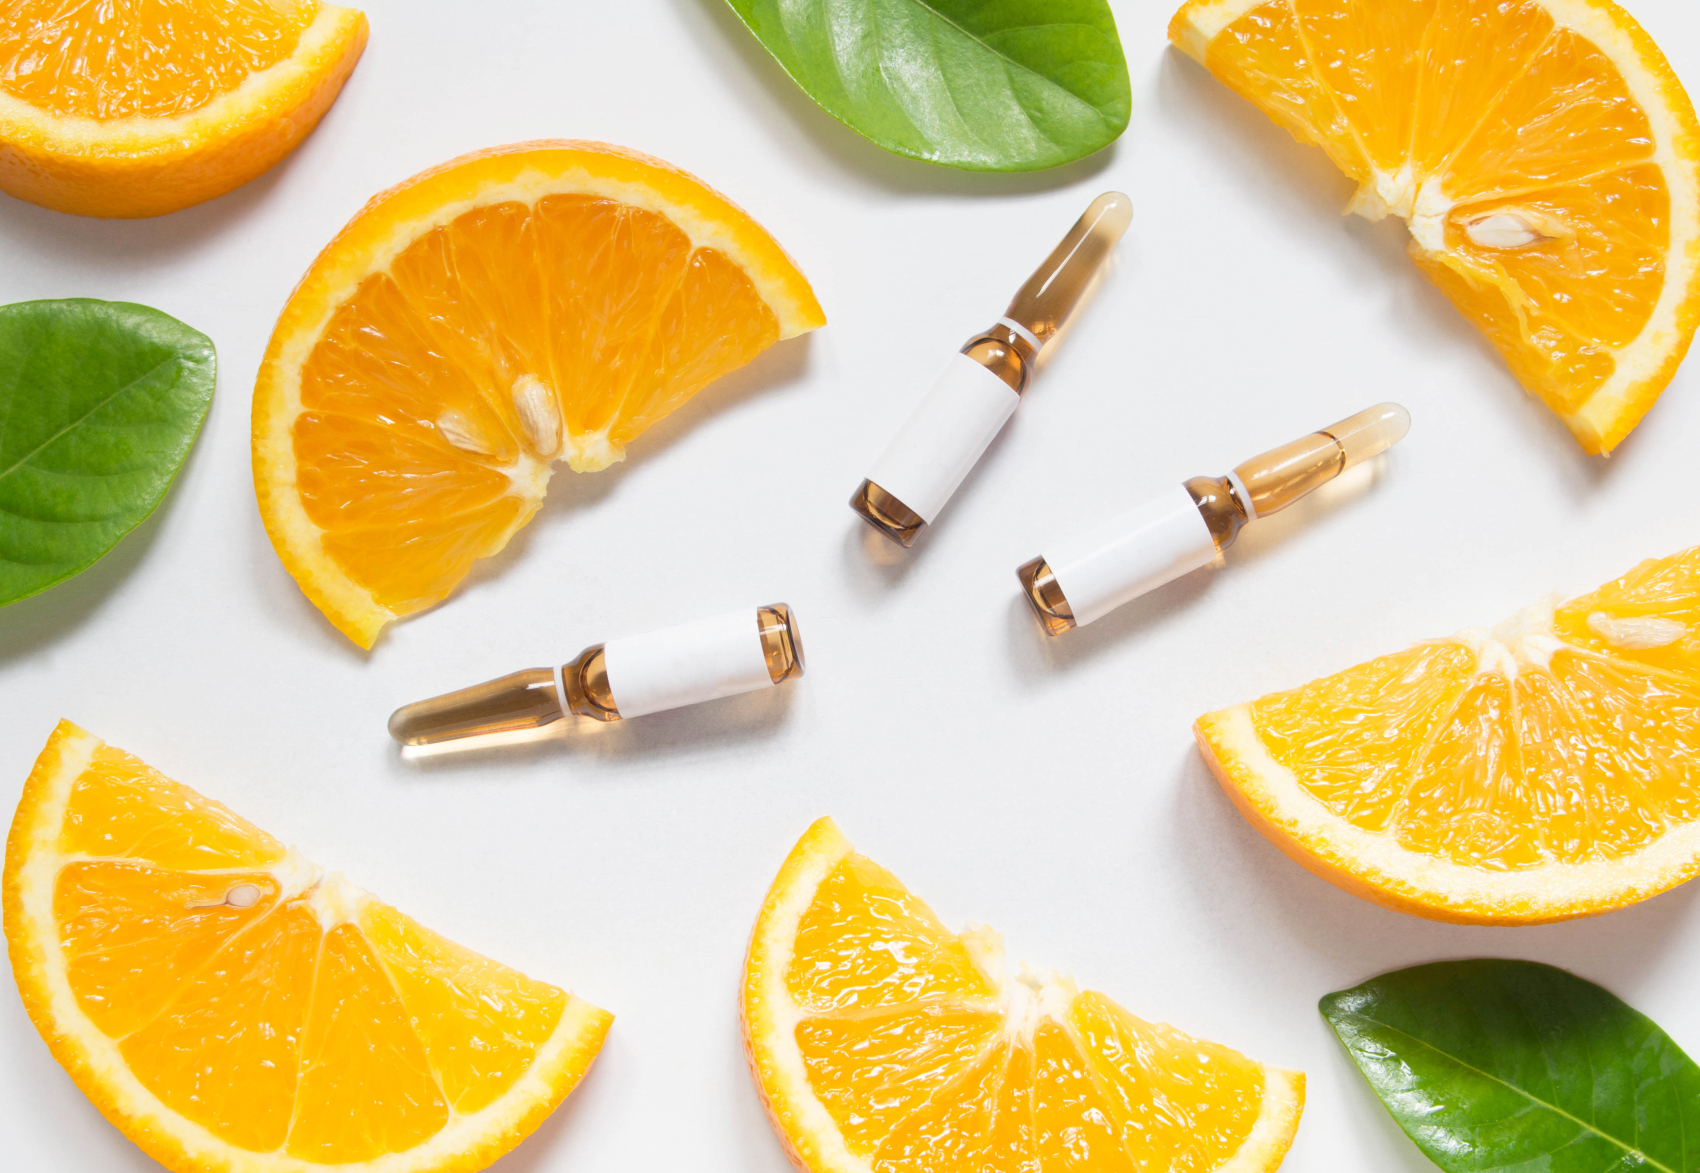 orange slices and ampoules respresenting immunity boost IV Therapy